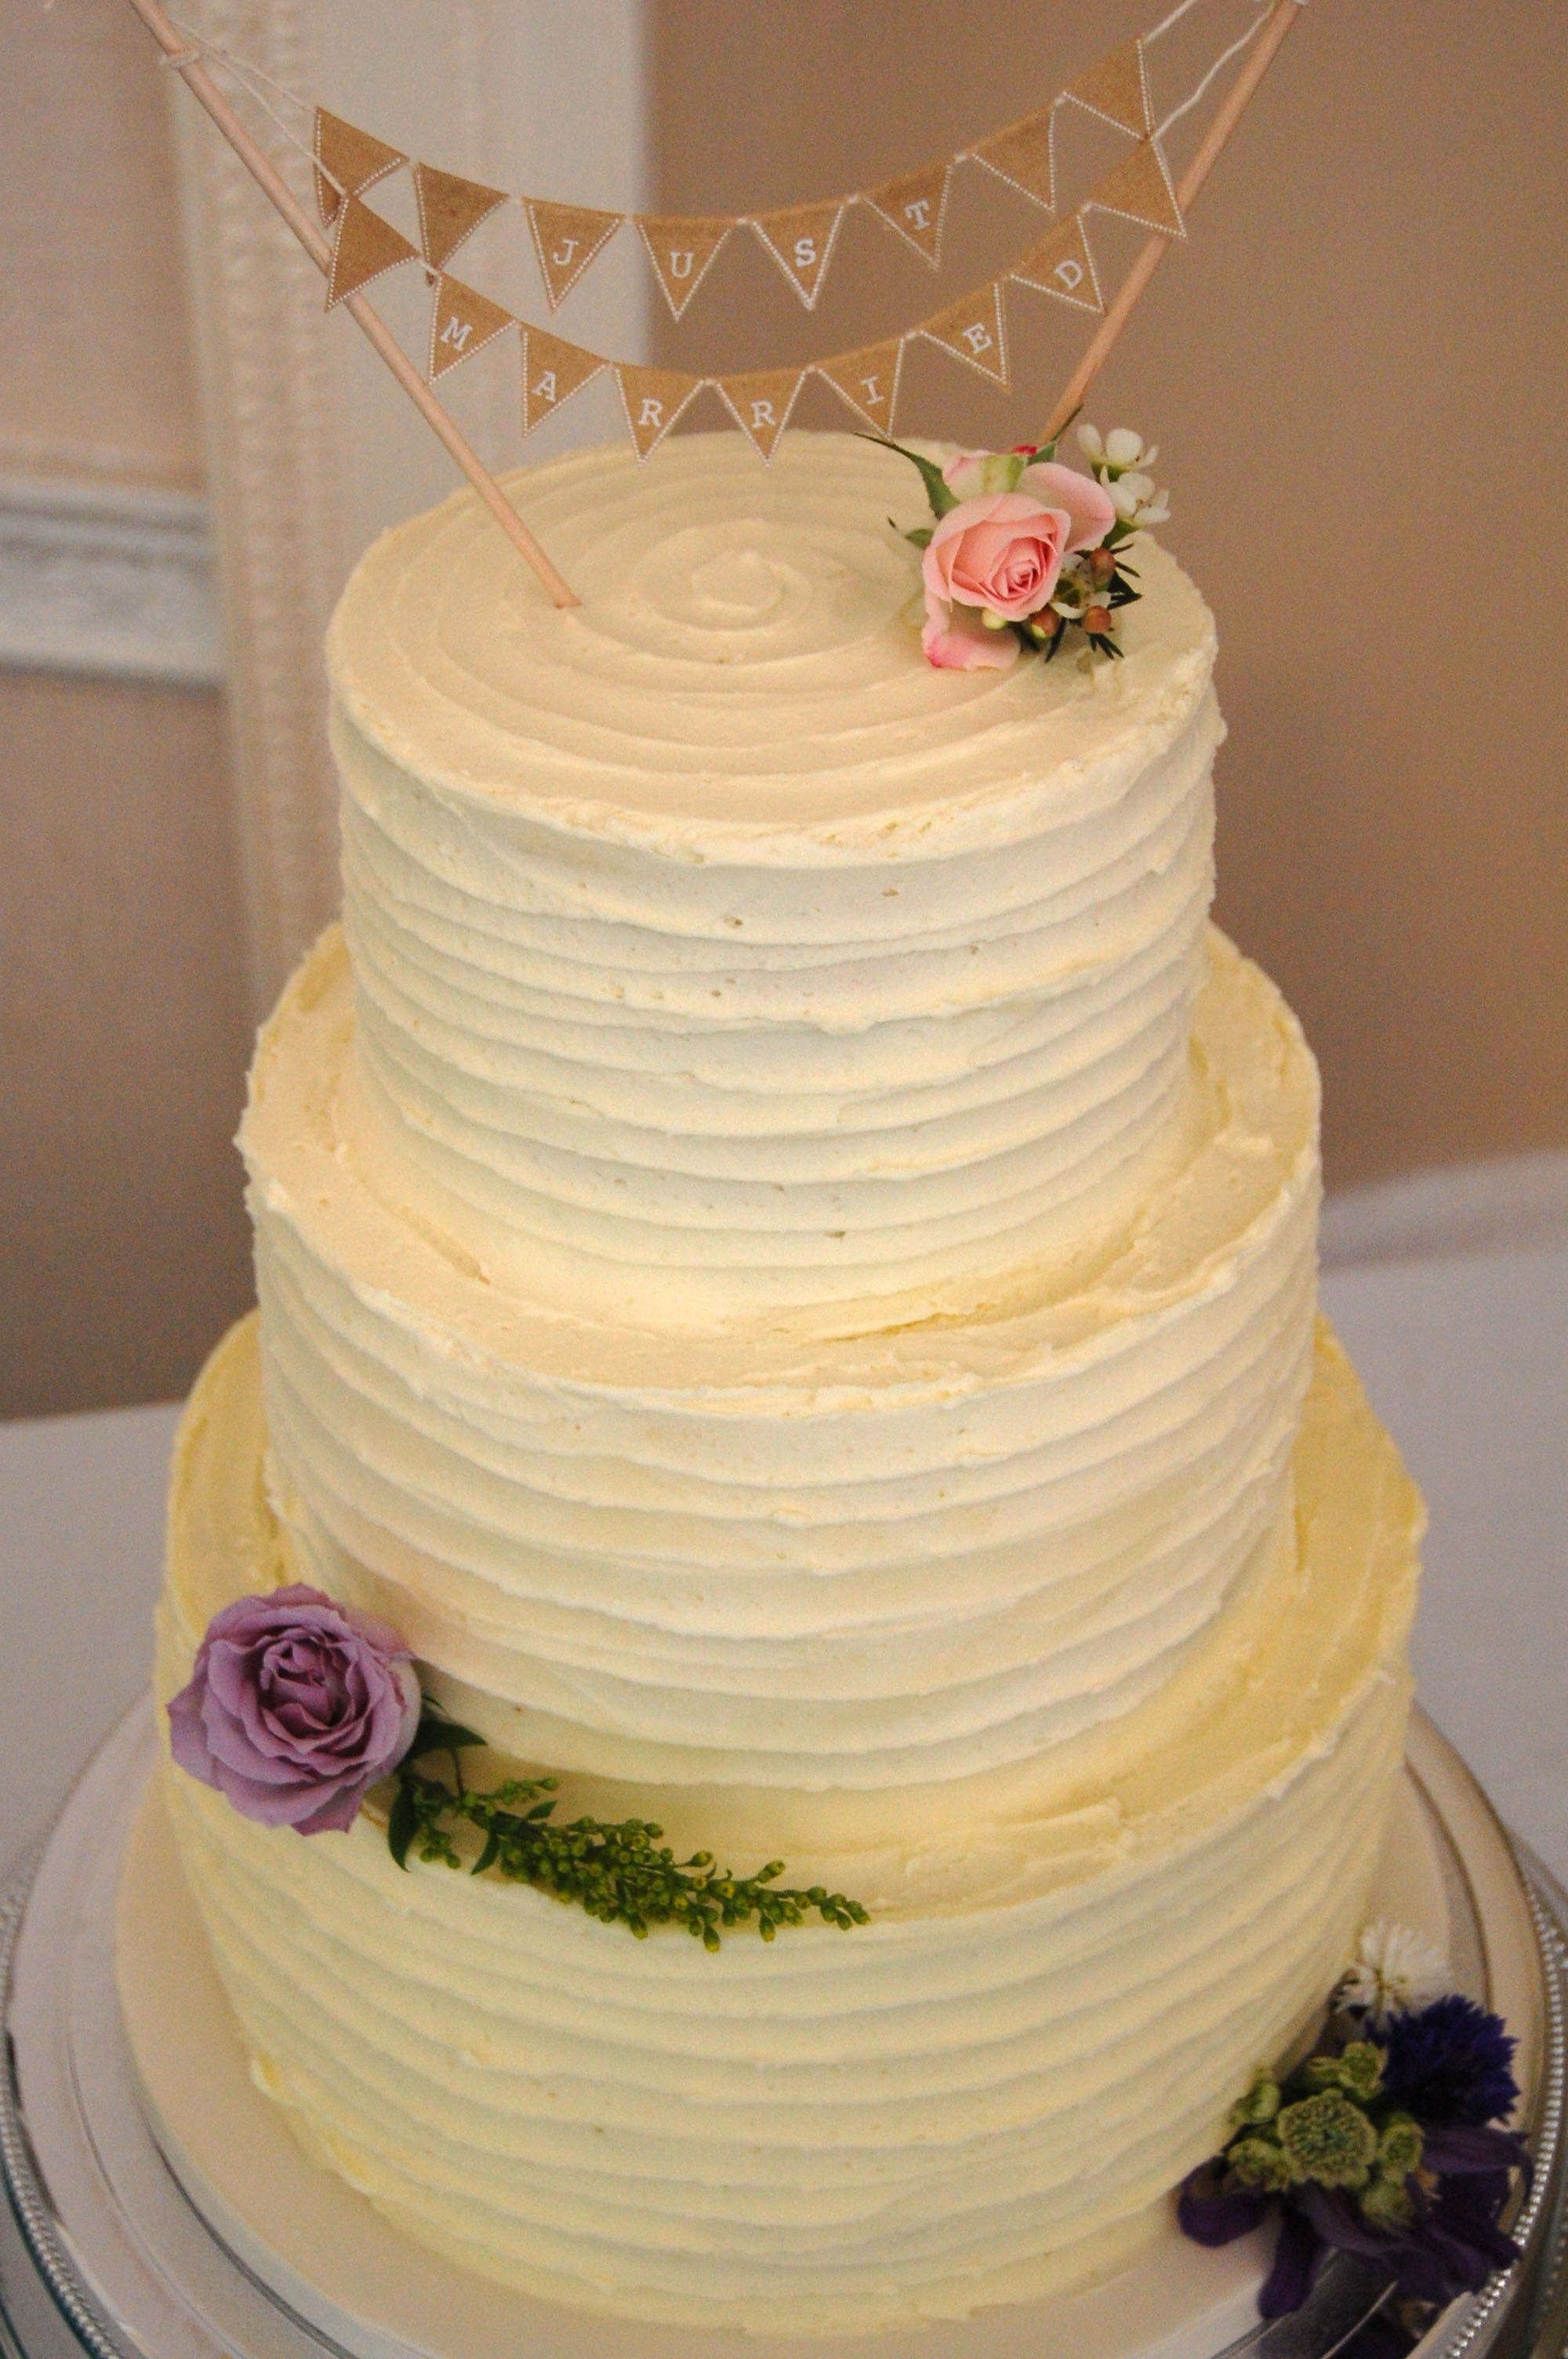 Pin by French Wedding Style on Wedding Cakes in 2018 | Pinterest ...